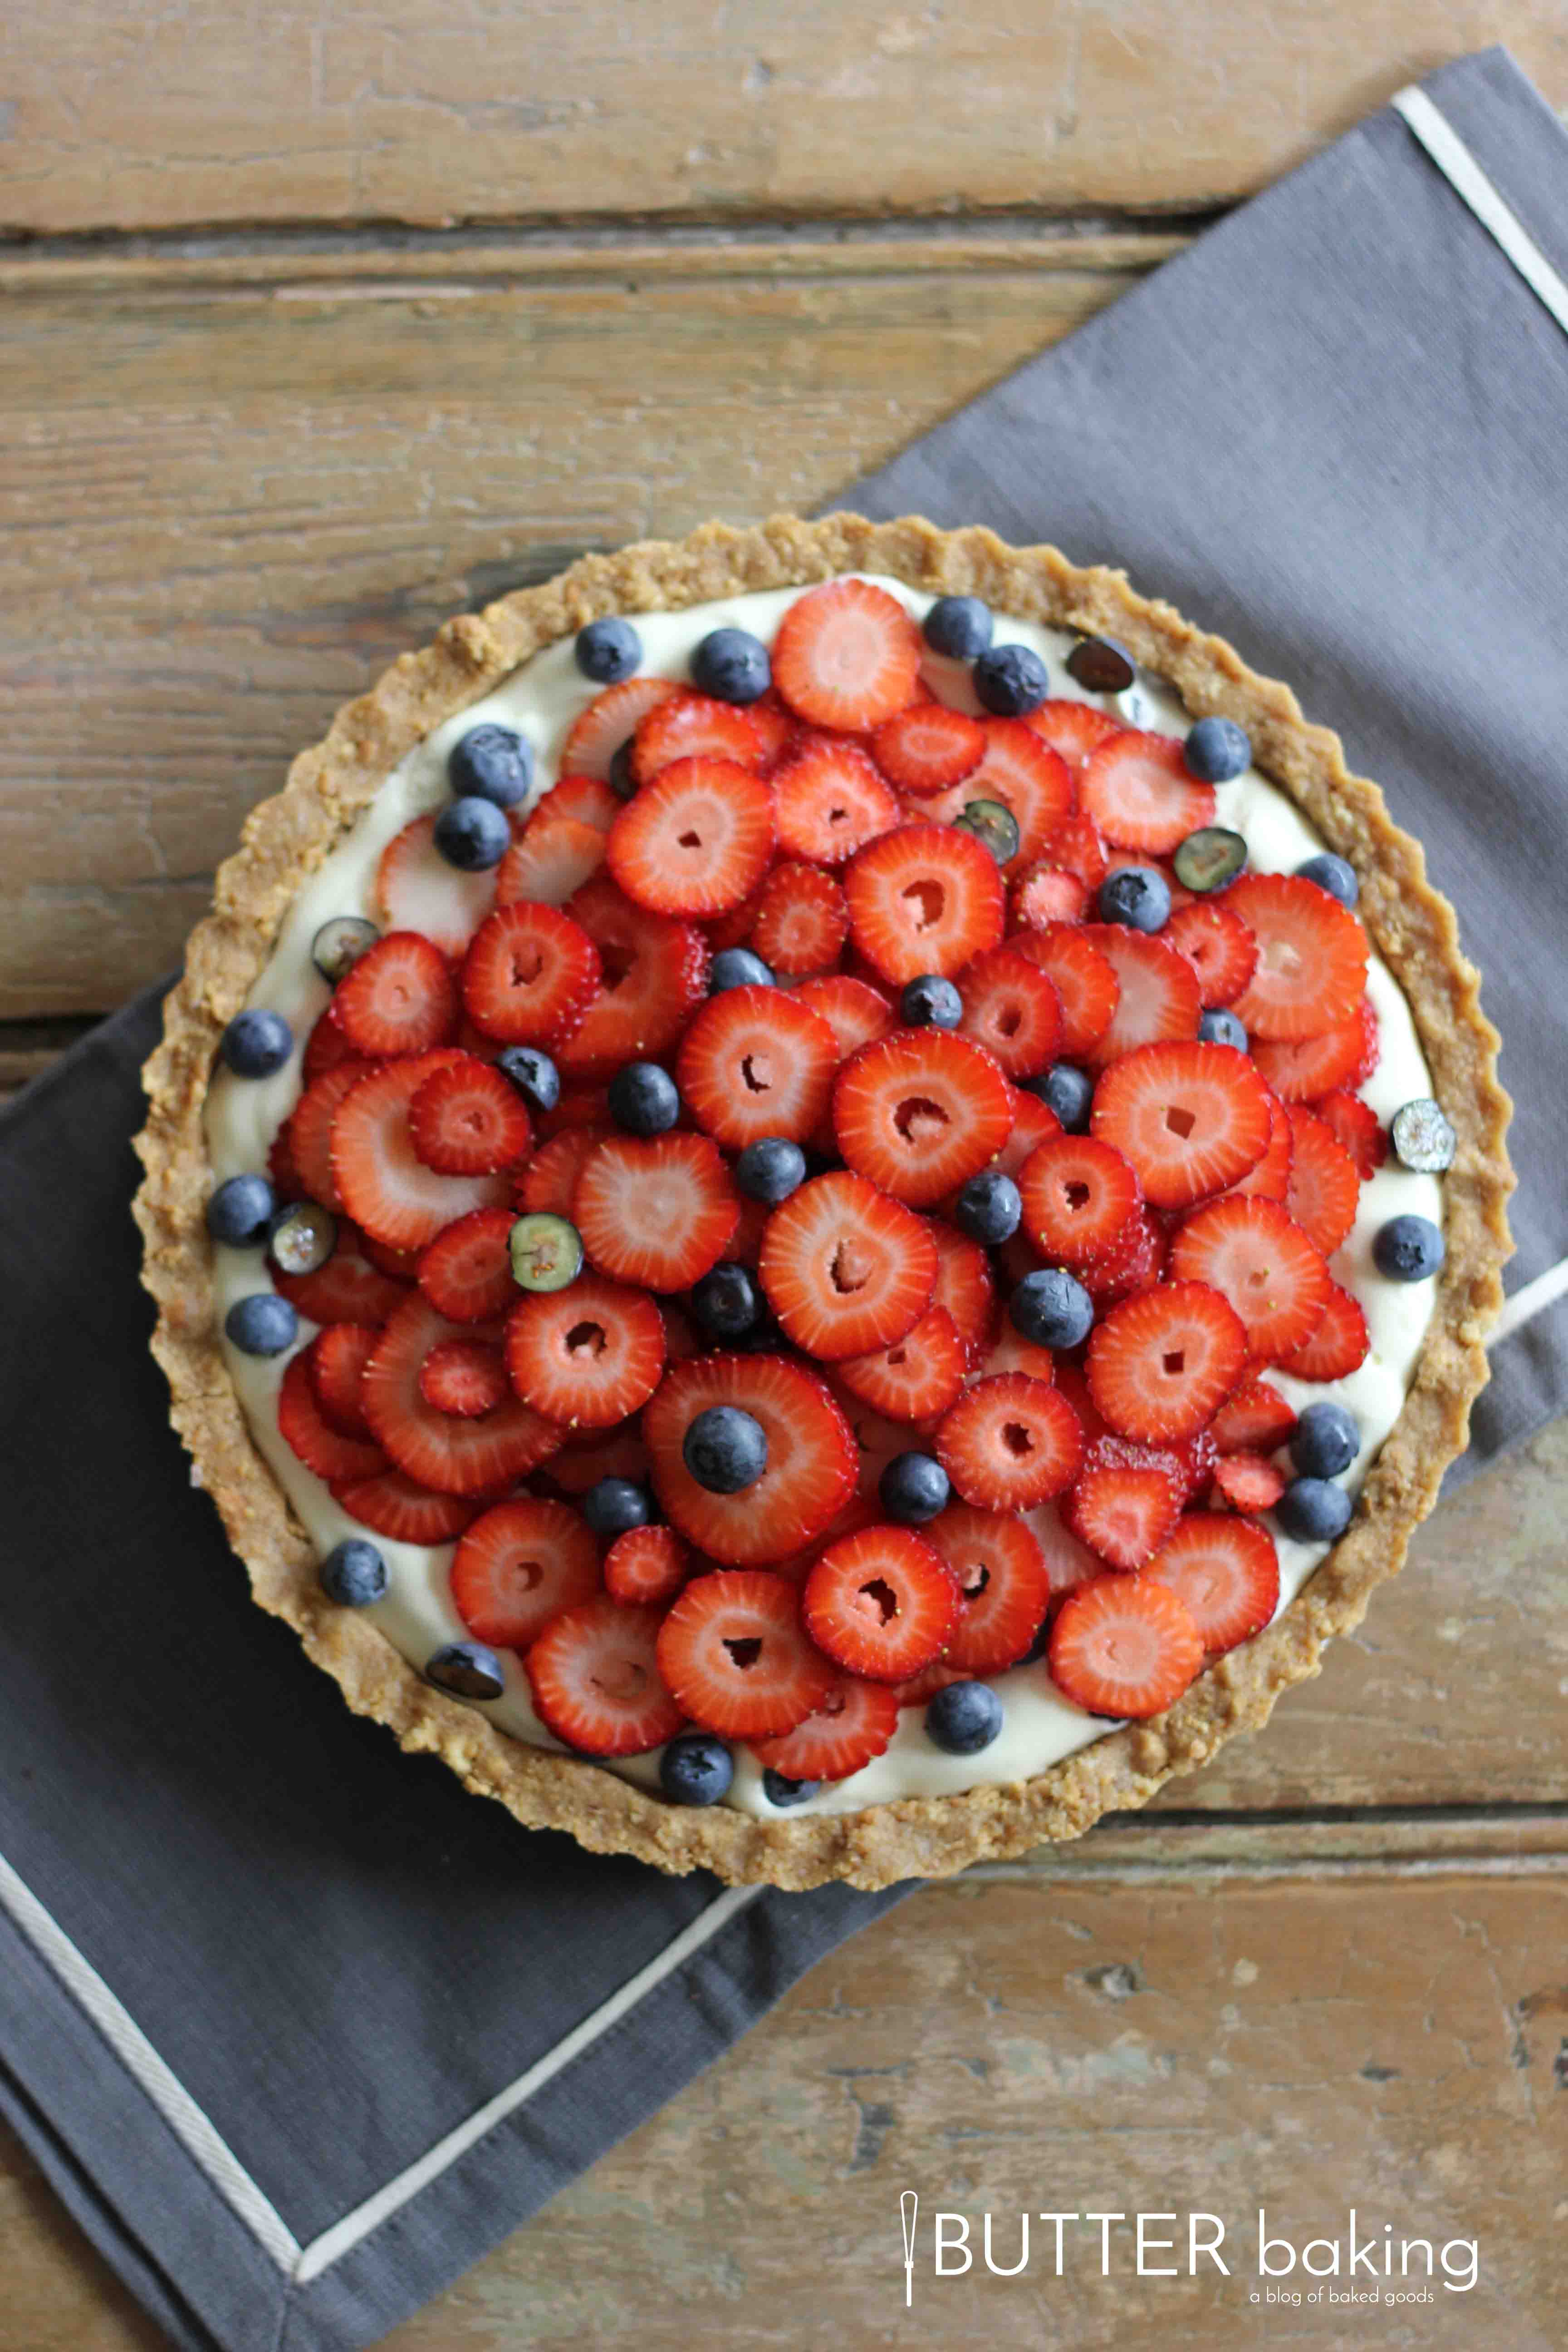 I Ve Made A Cheesecake Tart With This Filling Once Before As It S One Of My Favourite Go To Recipes It S Such A Simple Way To Get A Light And Creamy